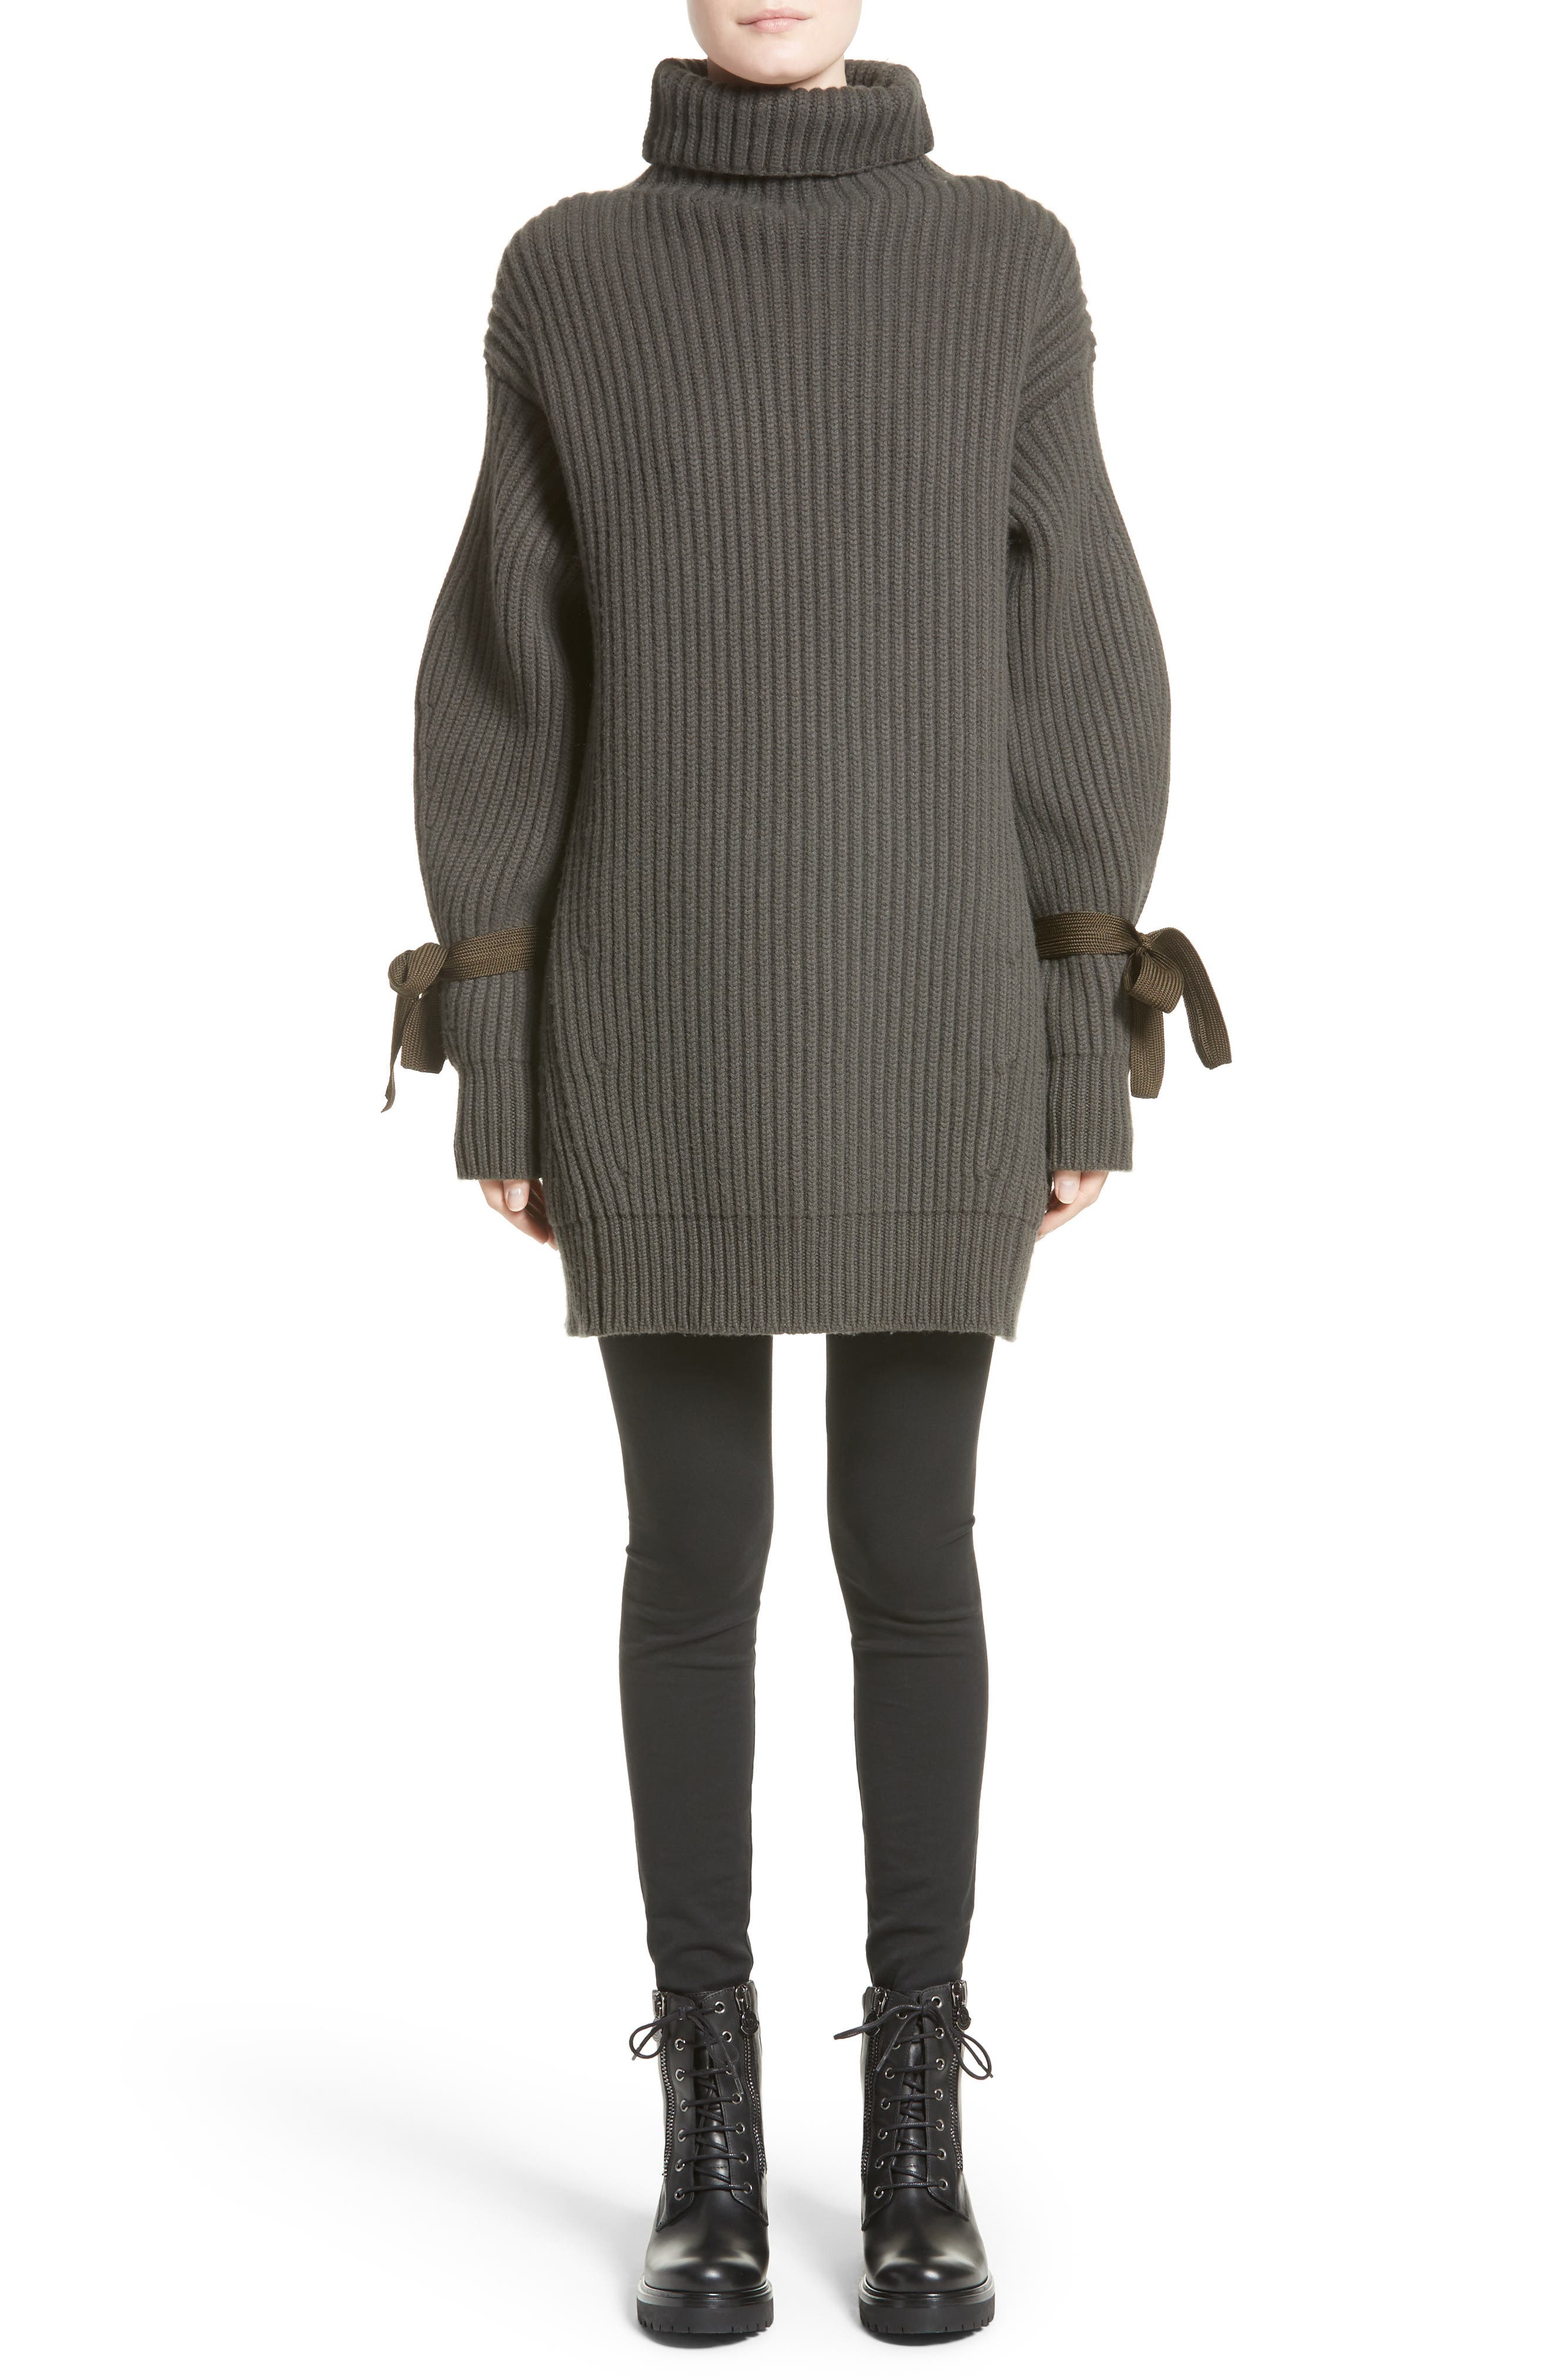 Main Image - Moncler Ciclista Wool & Cashmere Sweater